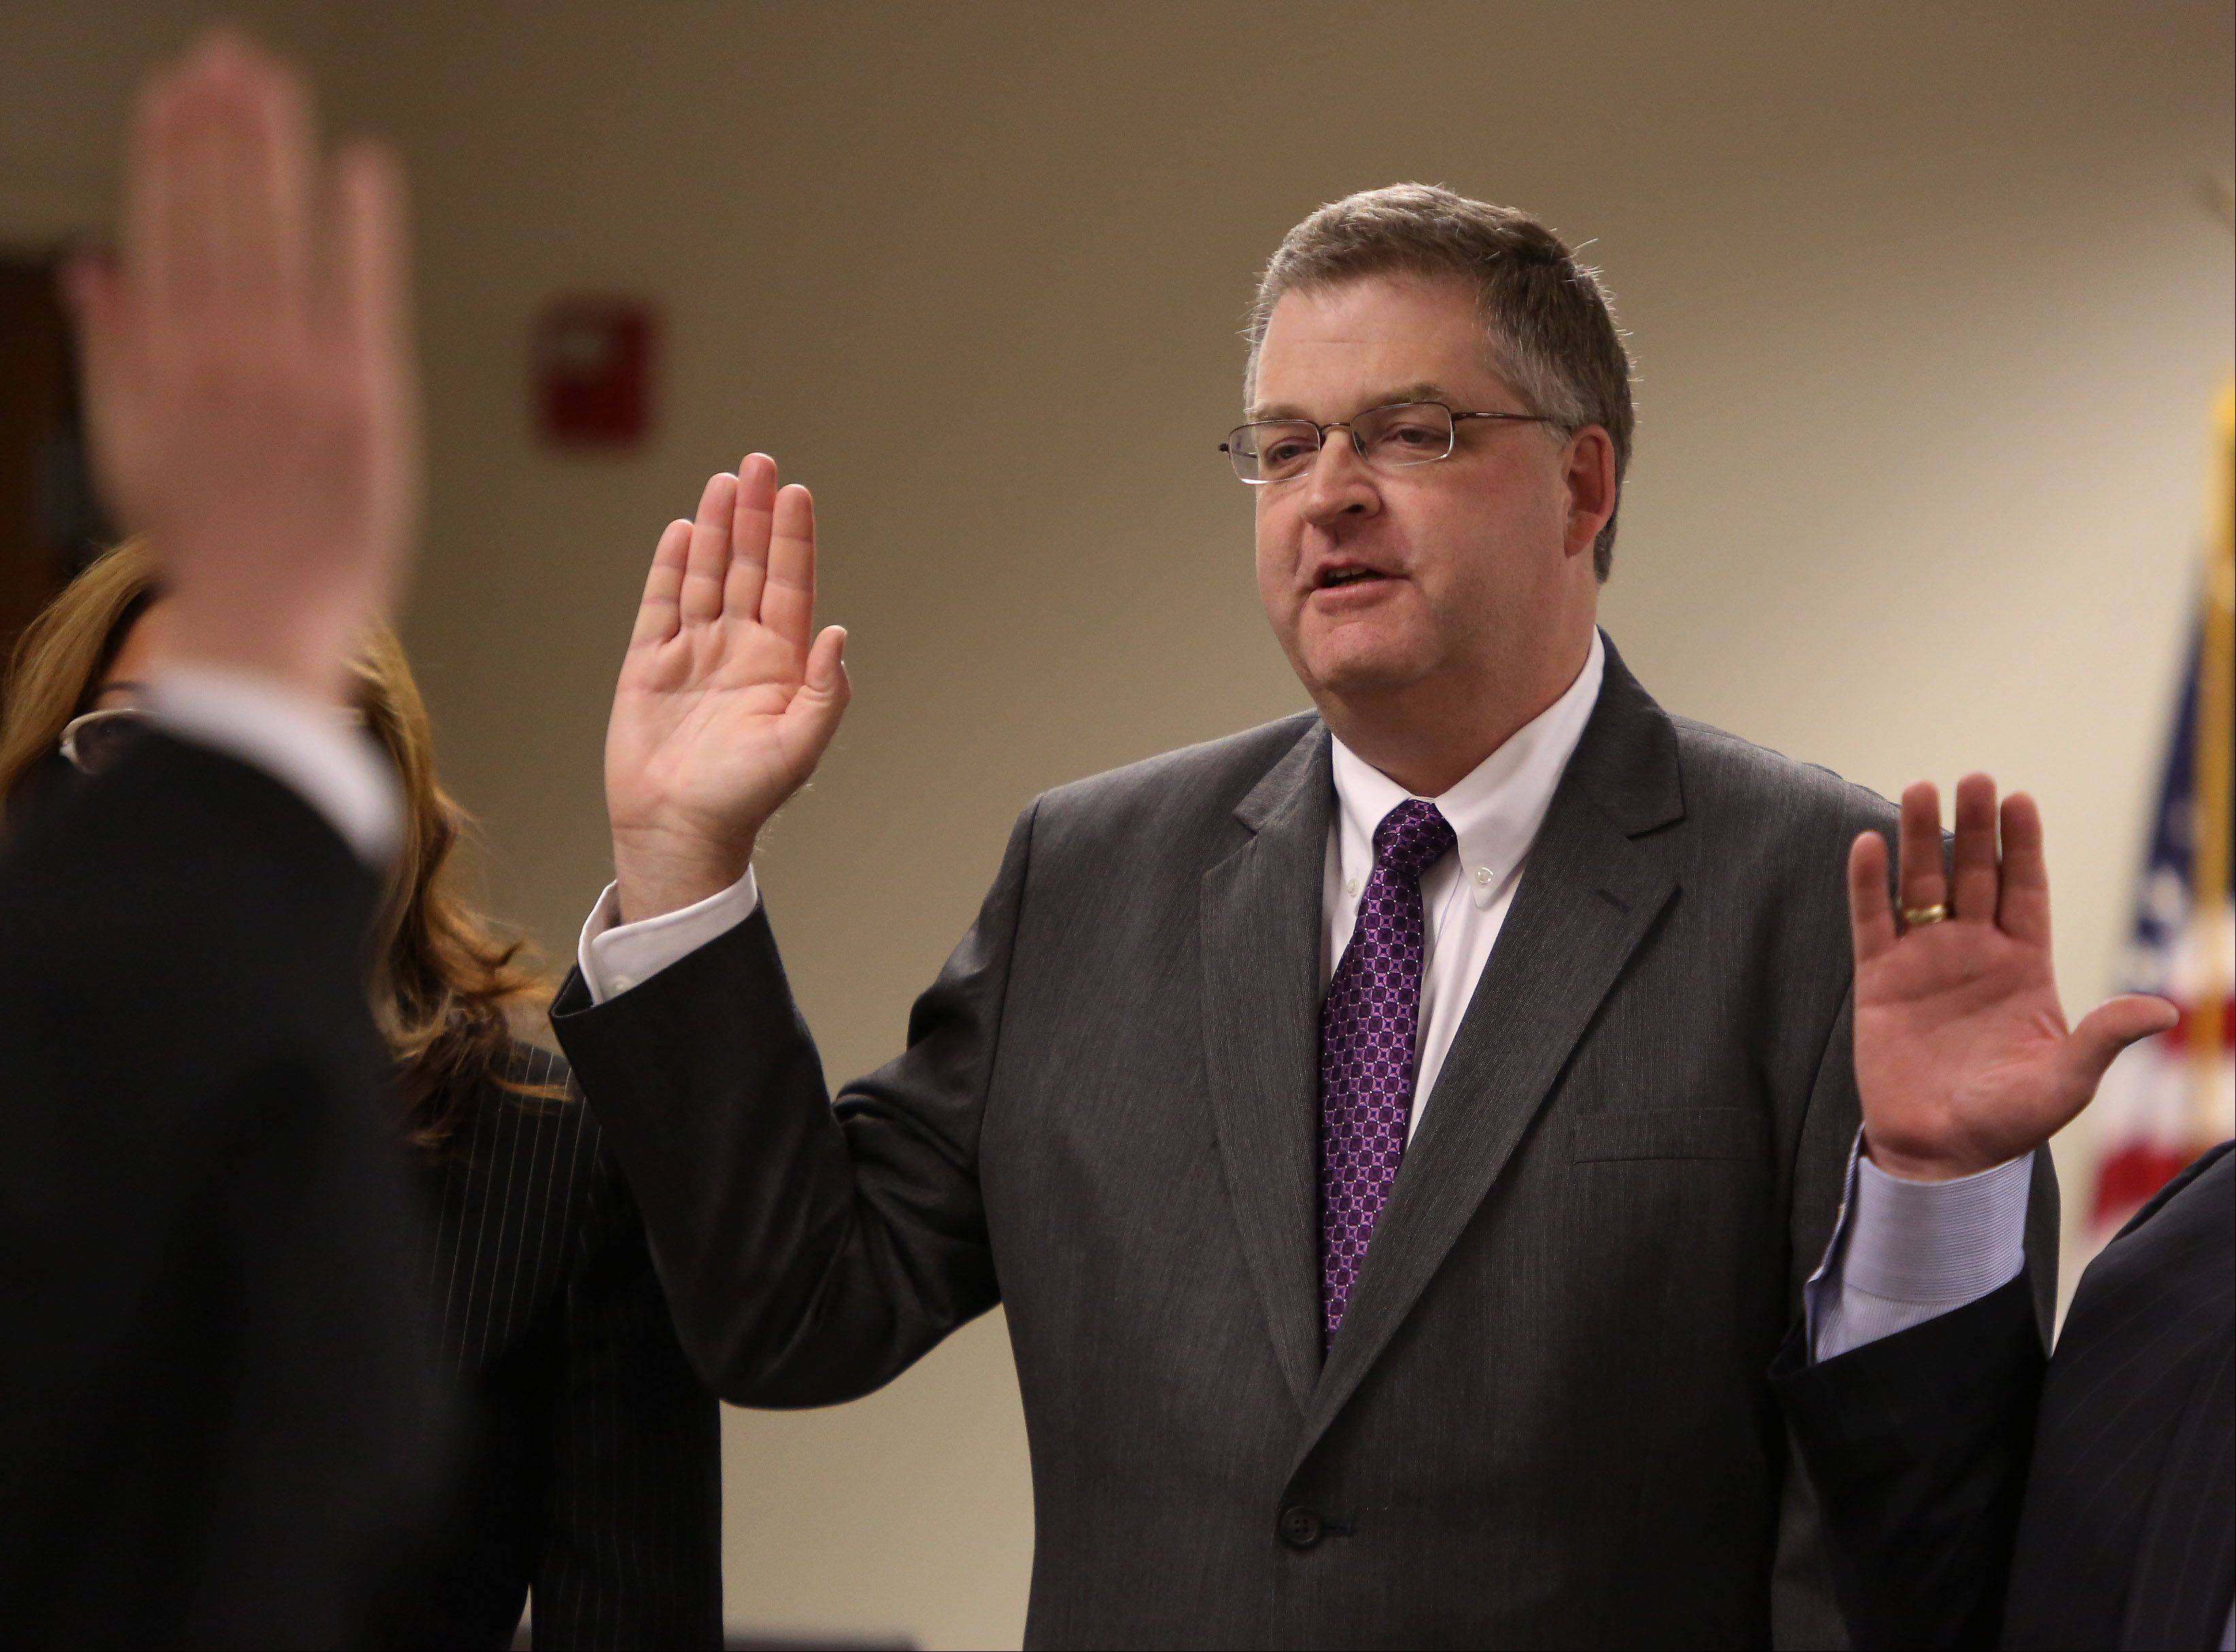 Steve Lentz takes the oath of office as the new mayor of Monday during the village board meeting Monday at the Mundelein Fire Station.